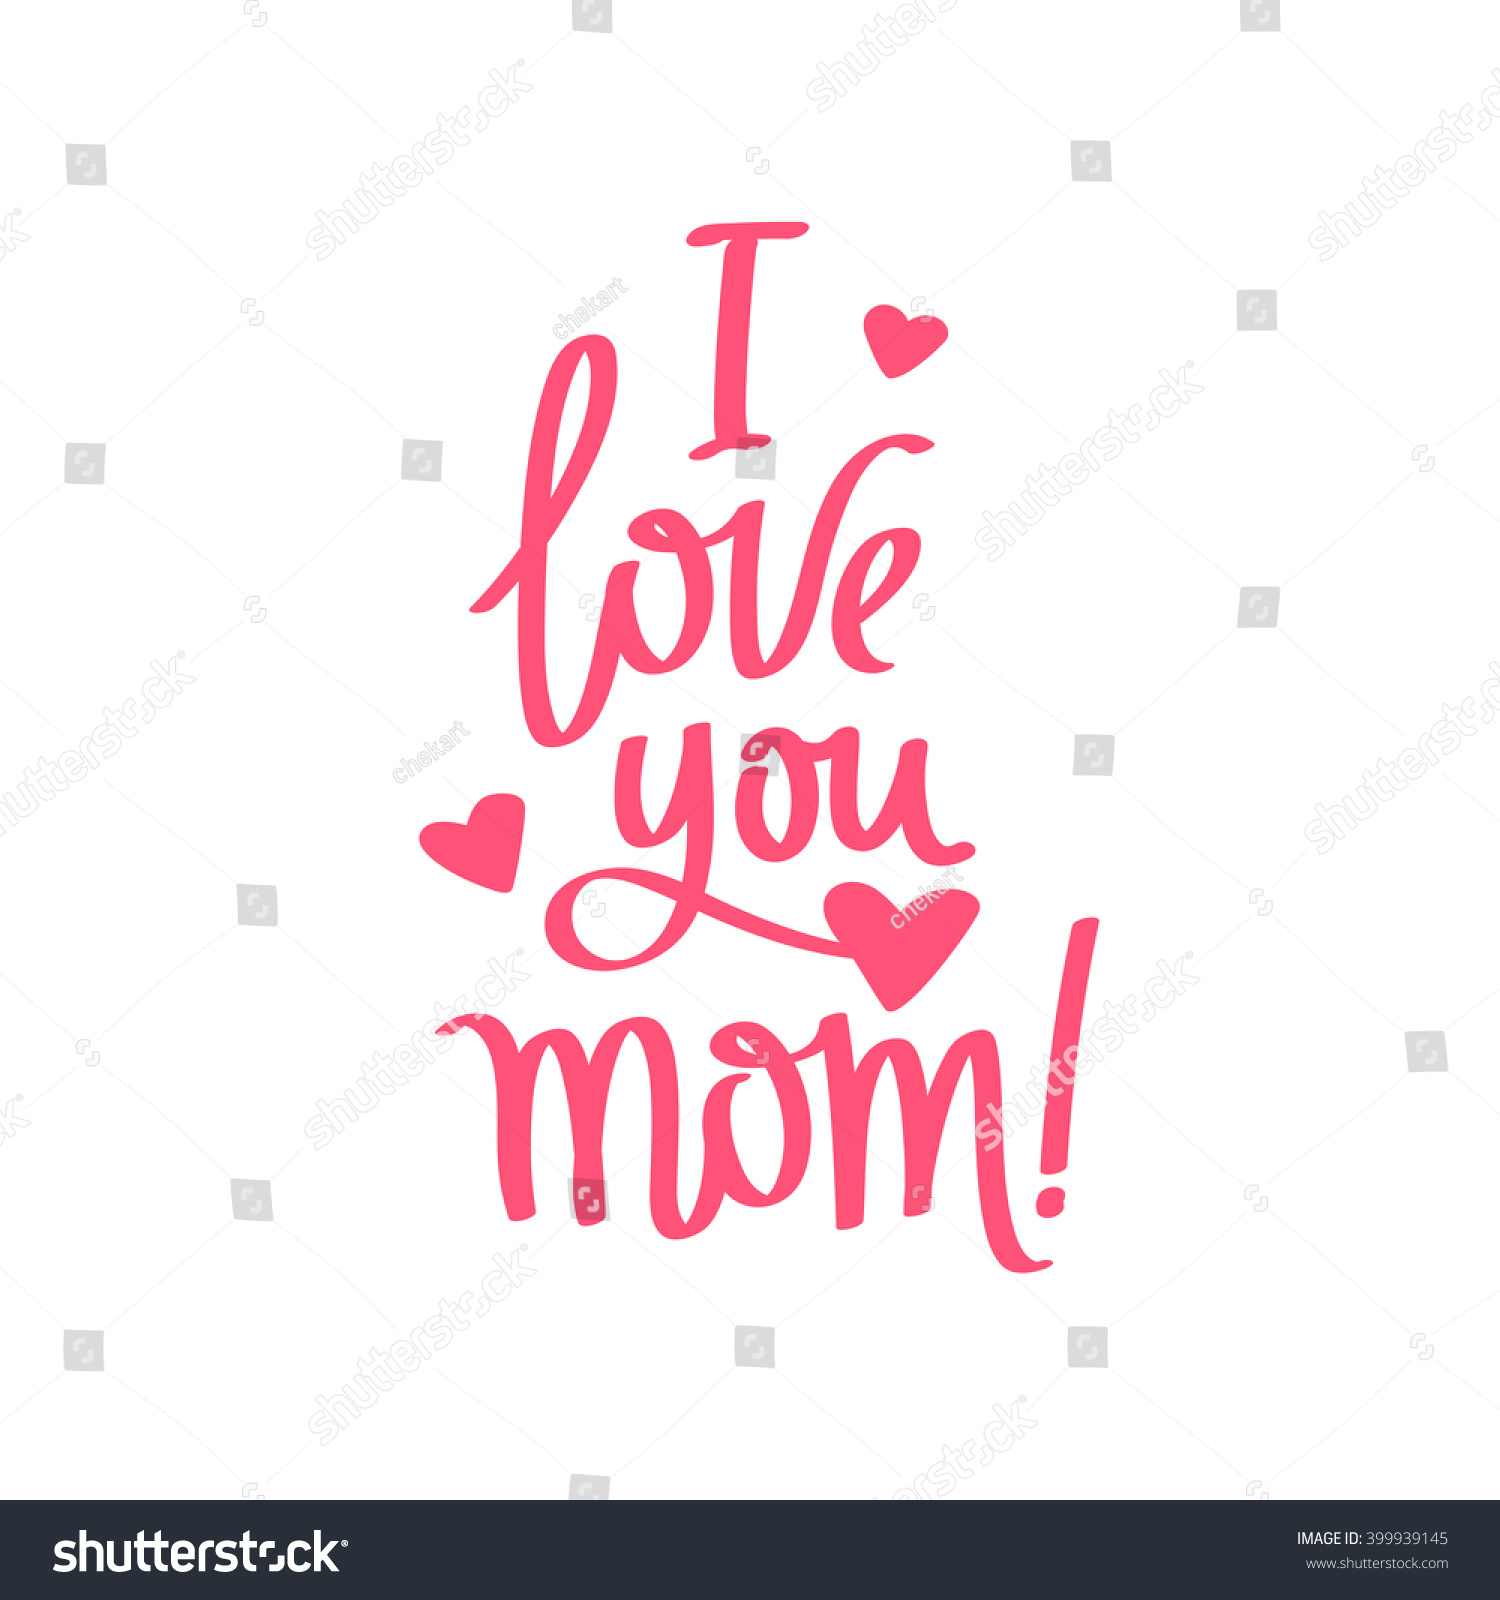 Quote I Love You Mom Fashionable calligraphy Excellent t card for Mother s Day